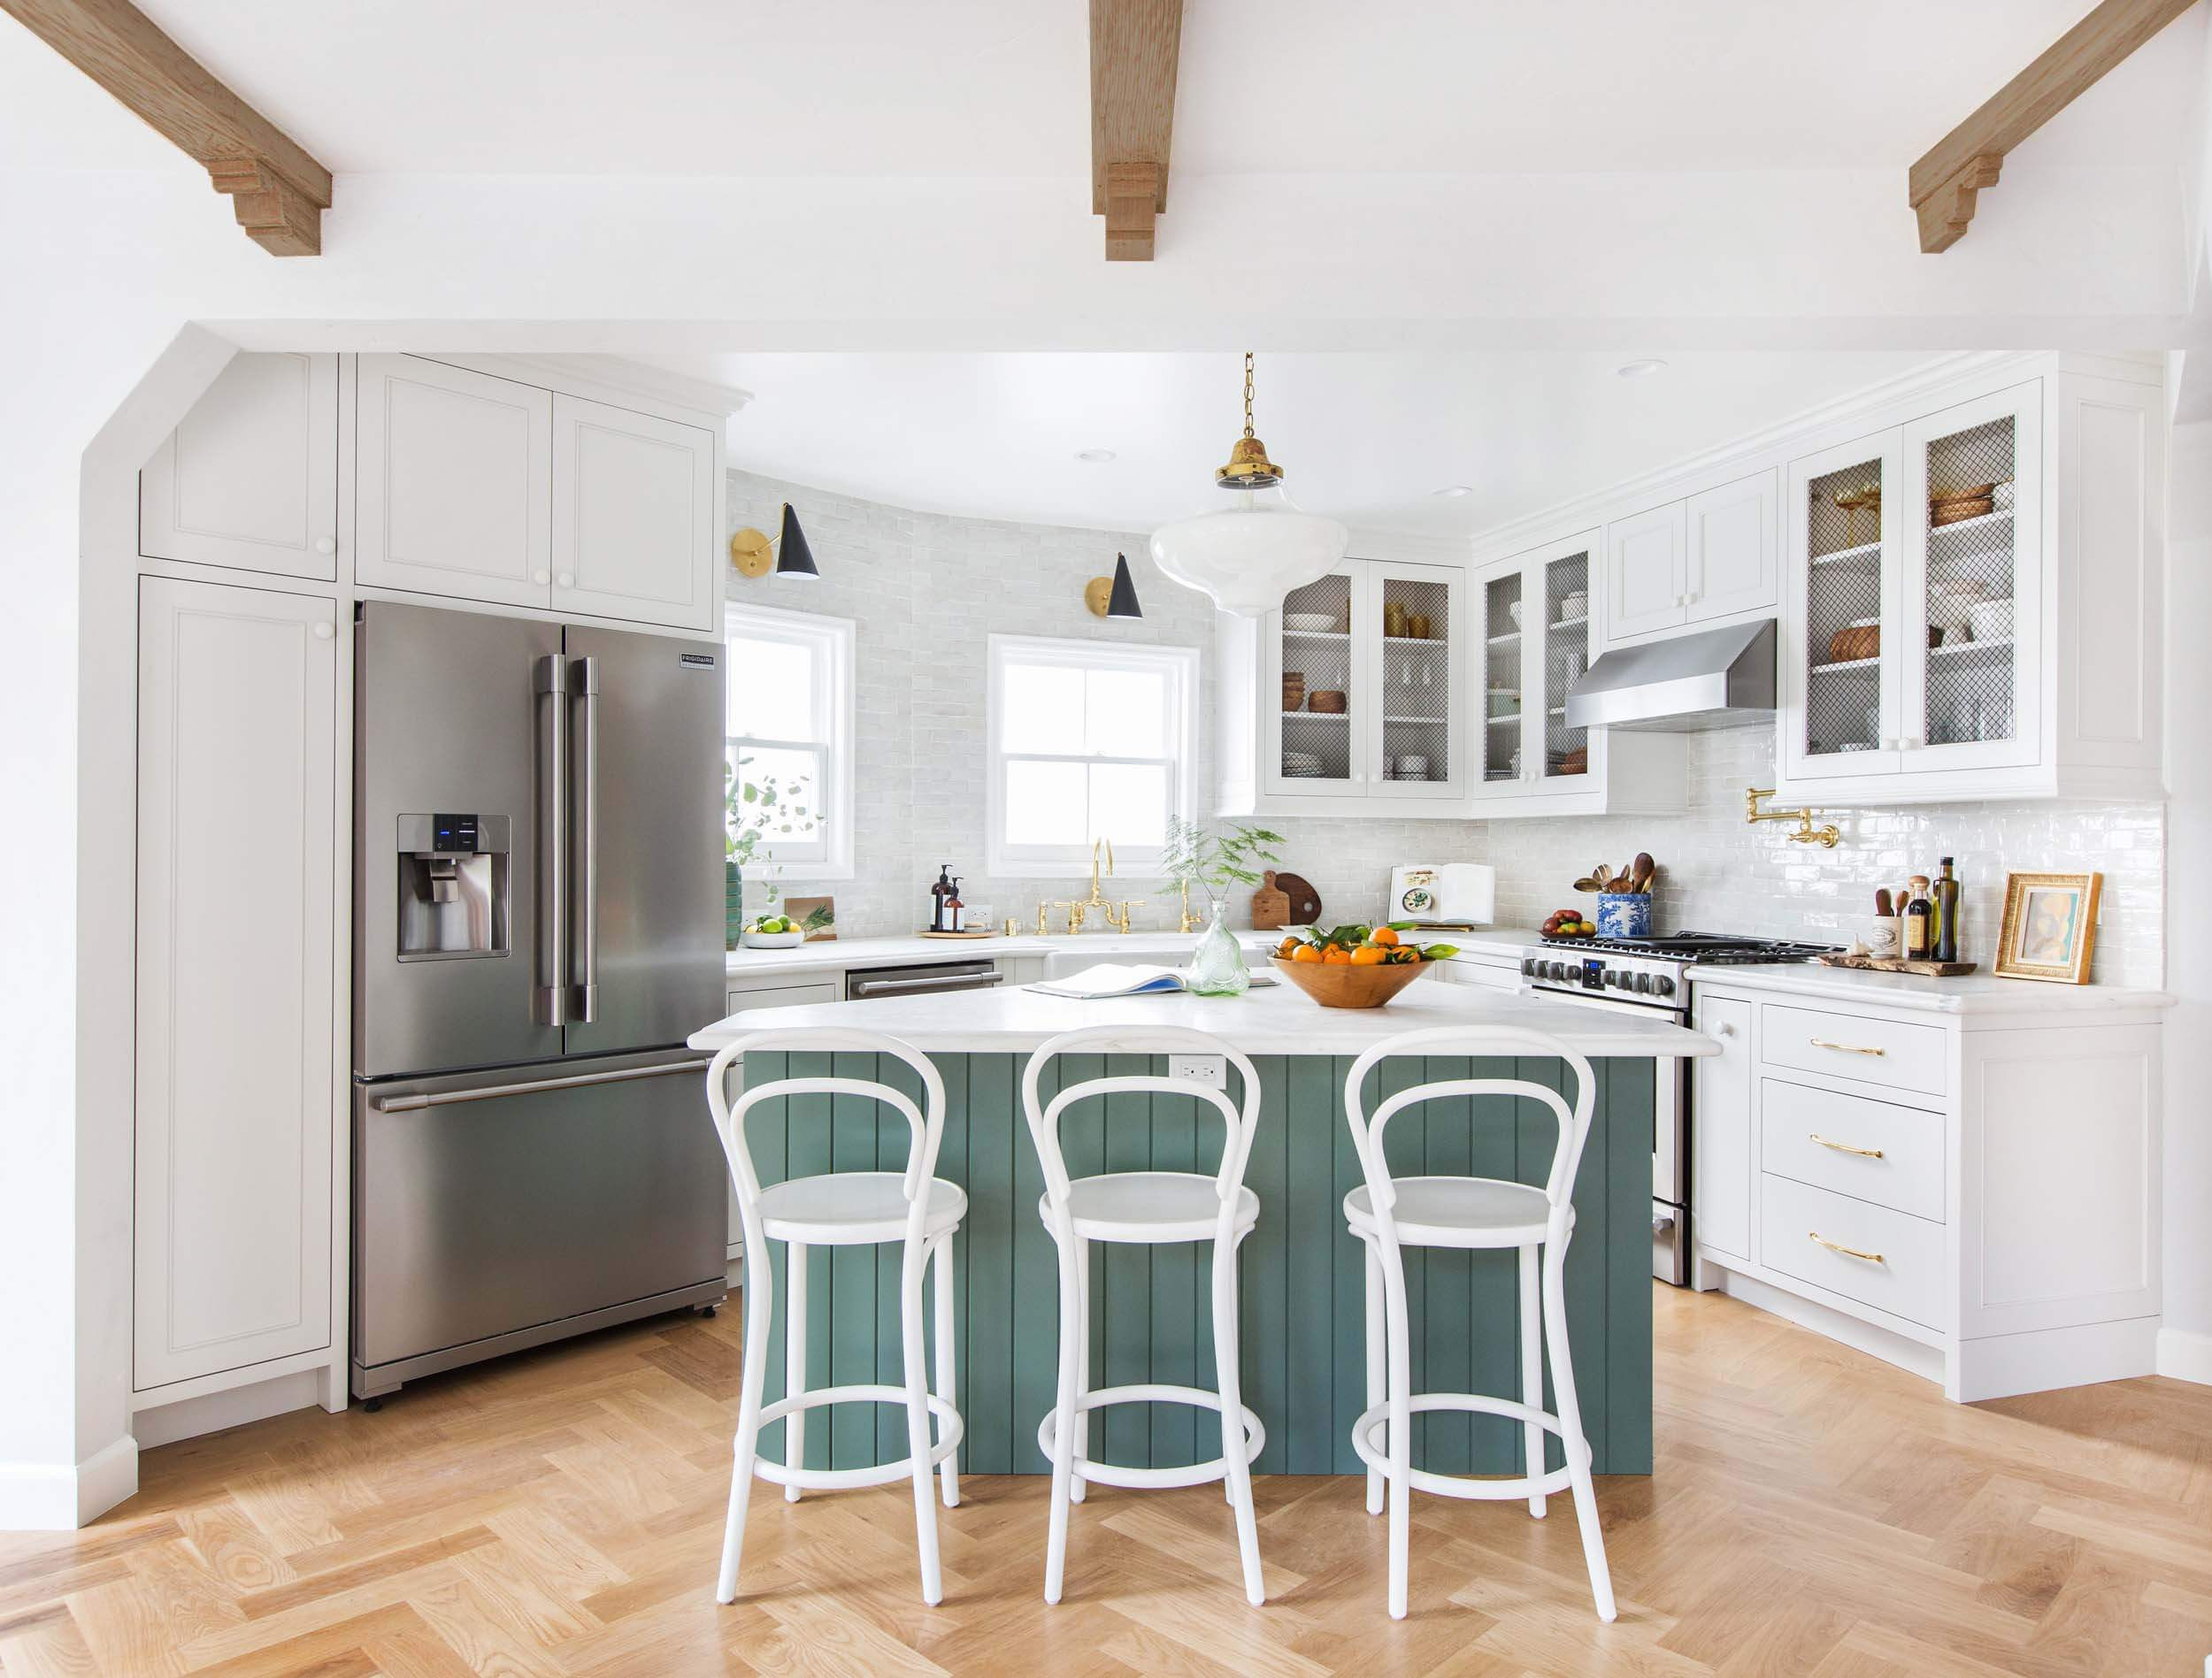 hardwood floor repair portland of my kitchen design a year later lots to love some regrets emily for emily henderson frigidaire kitchen reveal waverly english modern edited beams 121